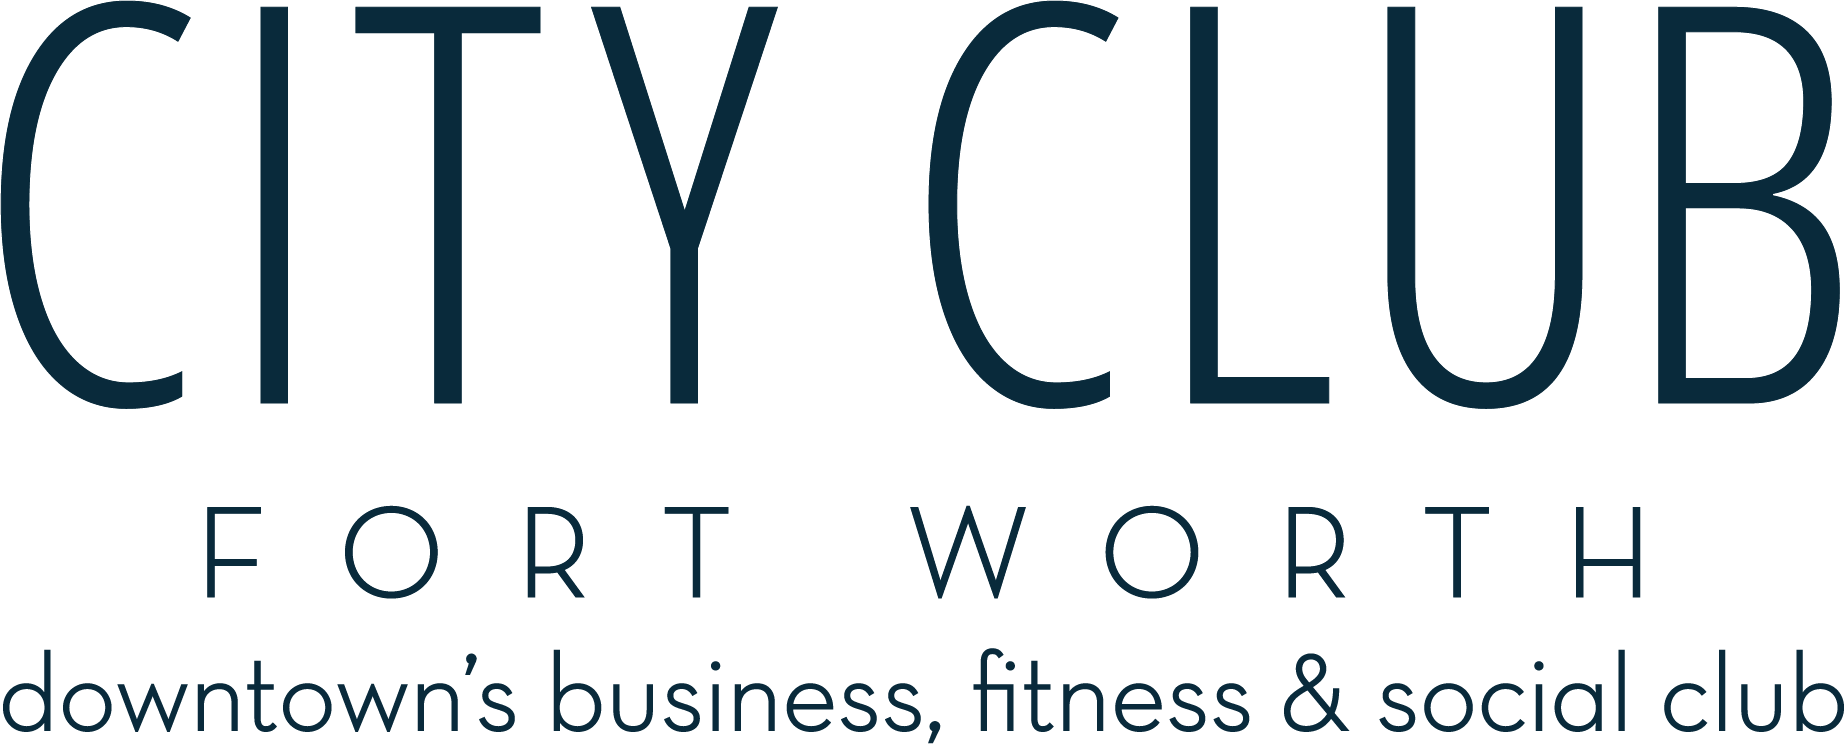 City Club Fort Worth